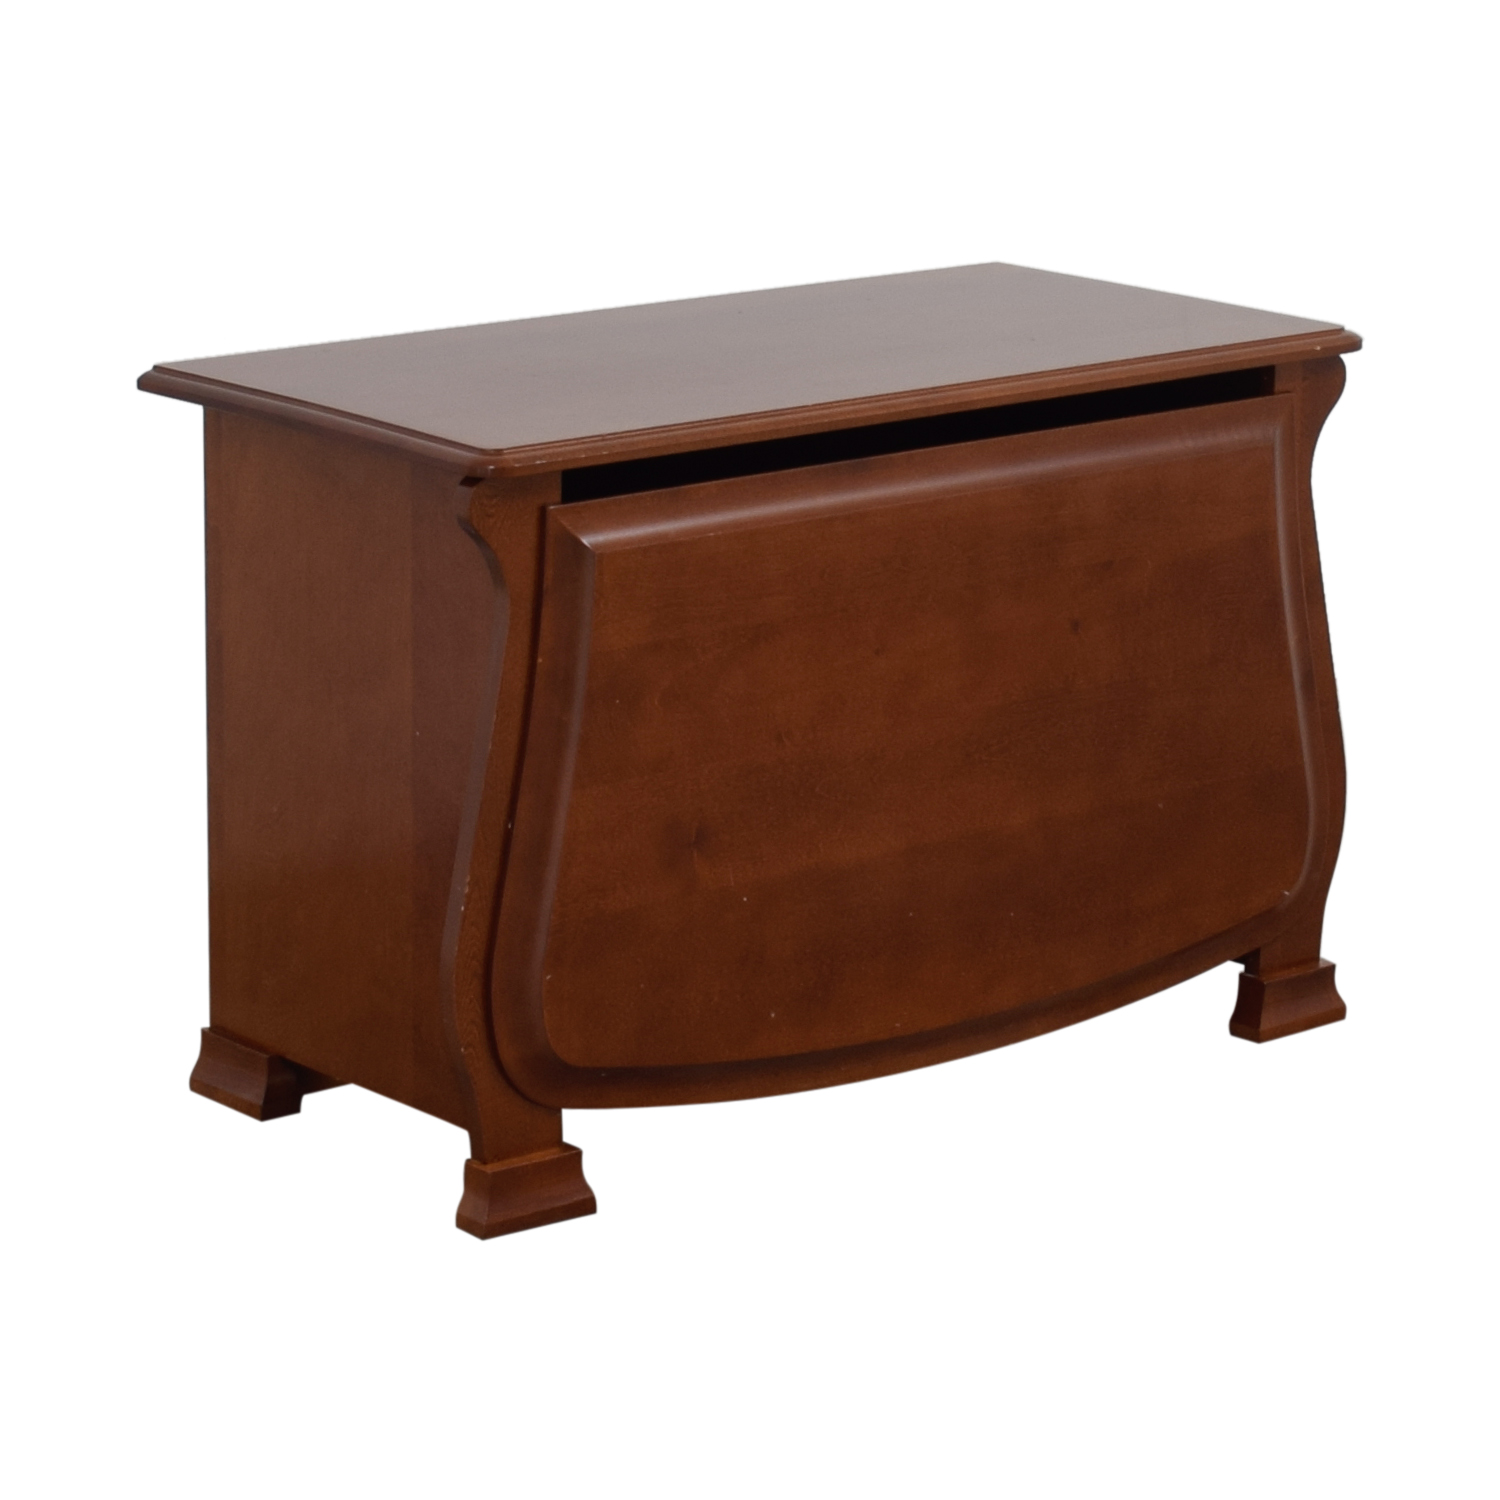 Pottery Barn Wood Toy Chest sale